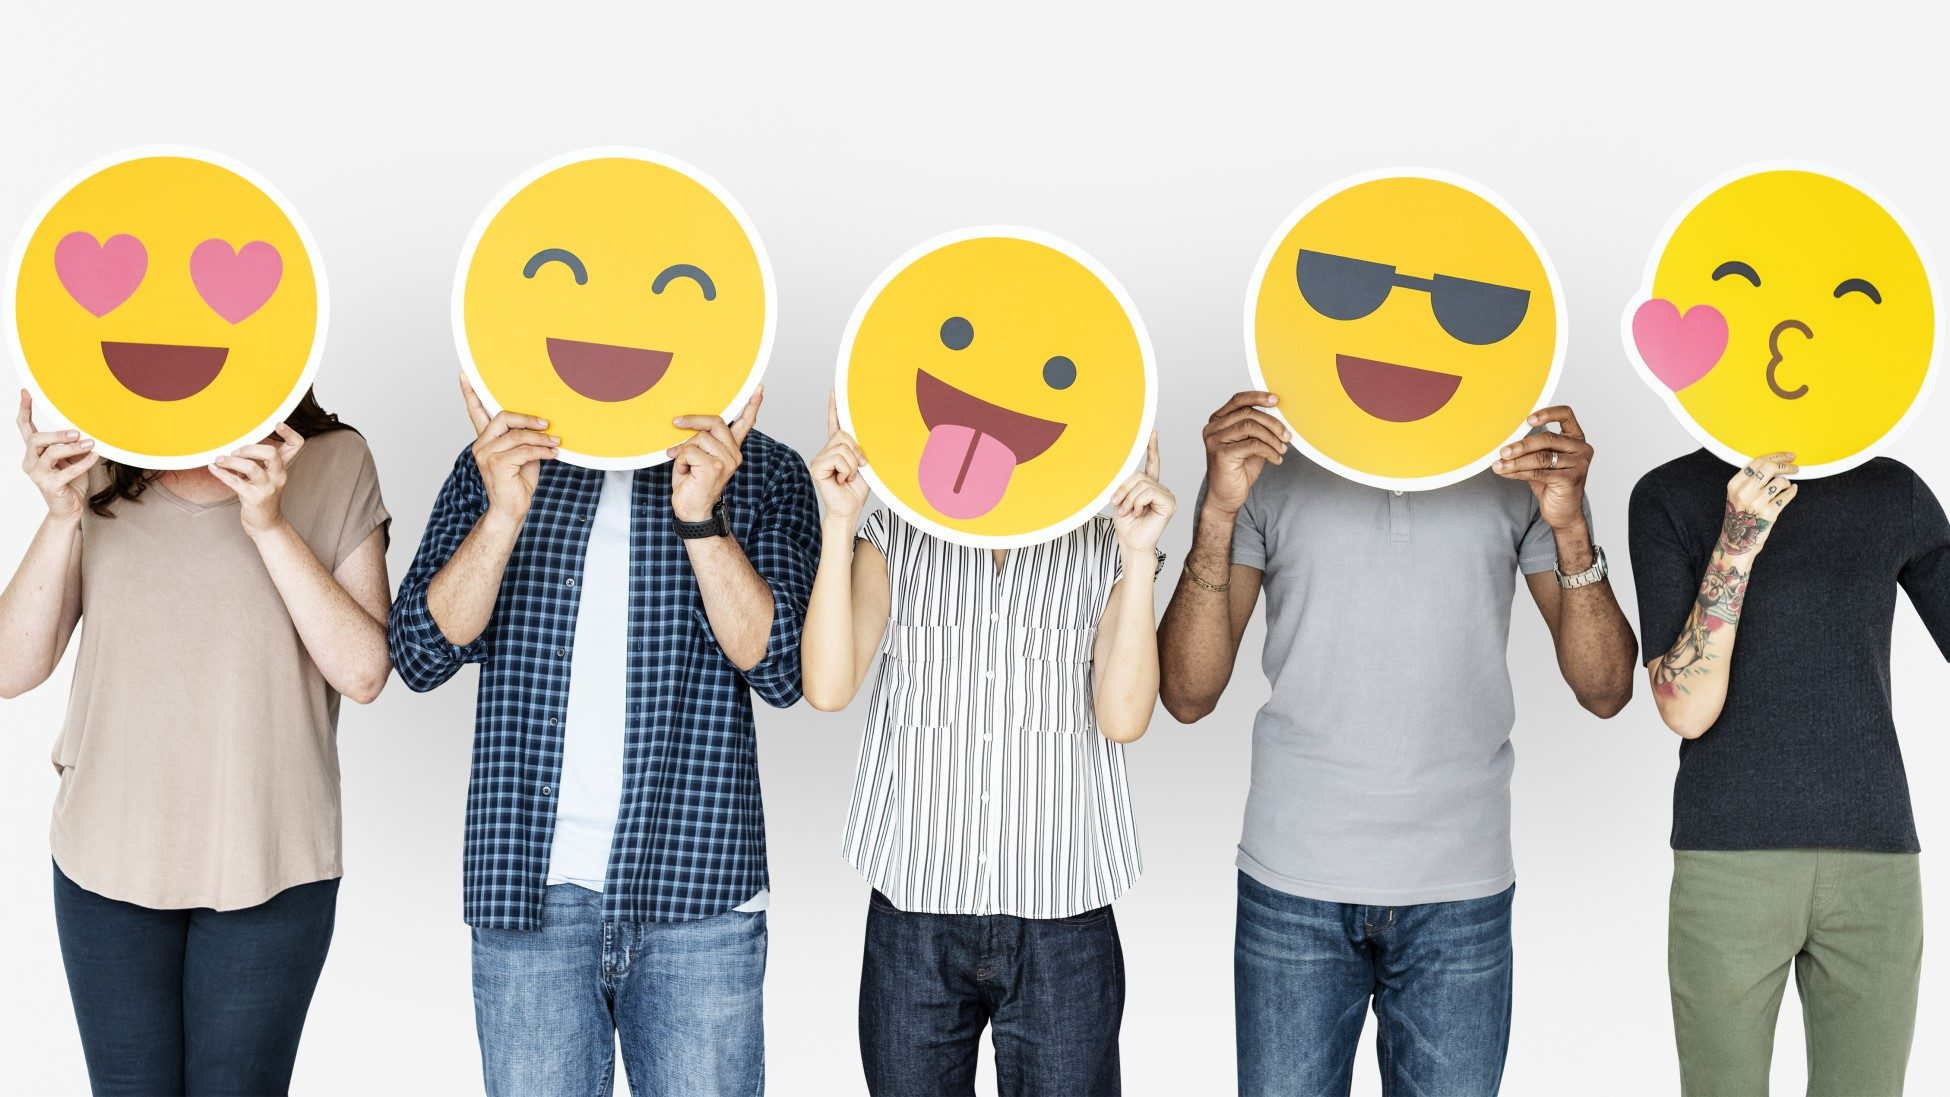 people holding emoji cutouts before their face